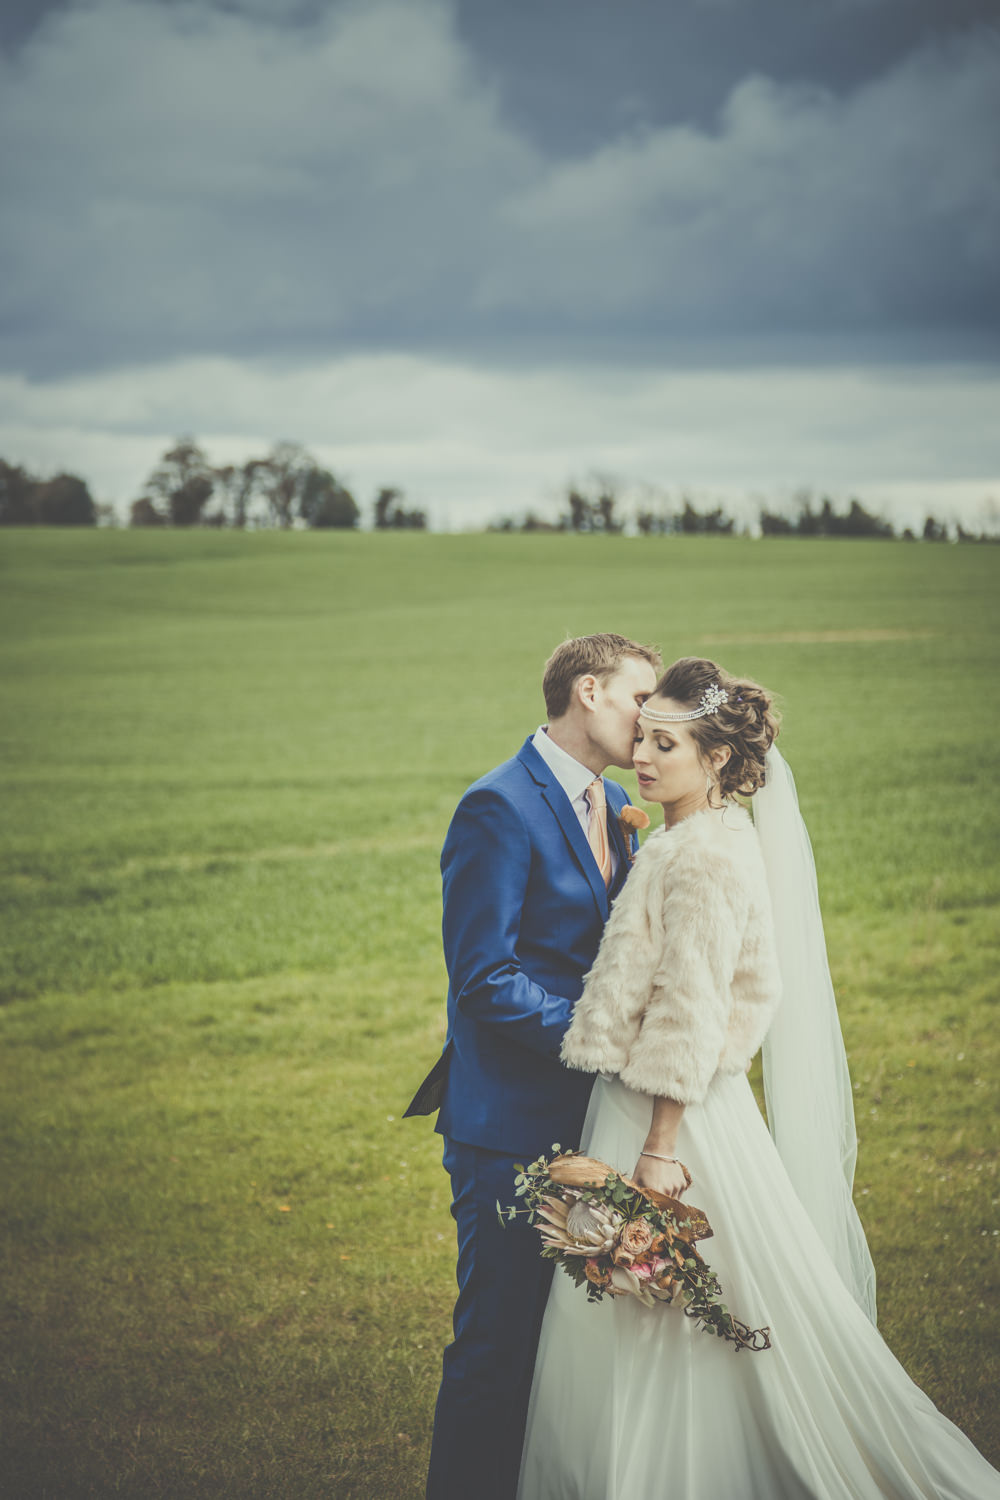 Top Wedding Photographer in Hampshire